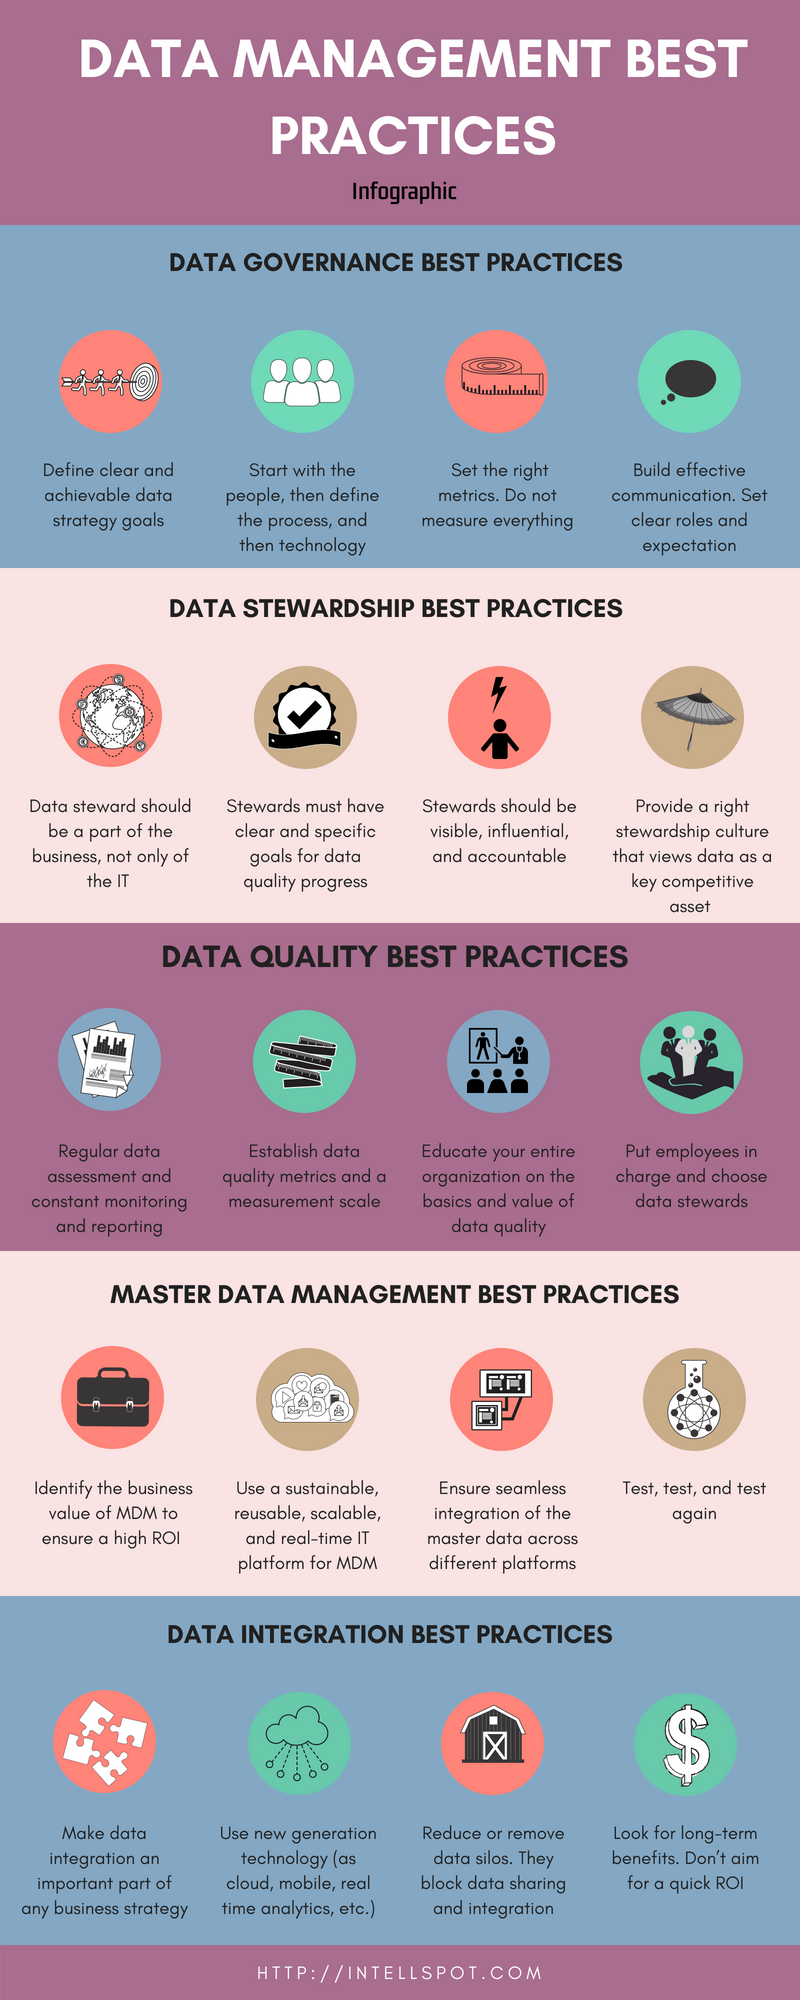 Data Management Best Practices - infographic